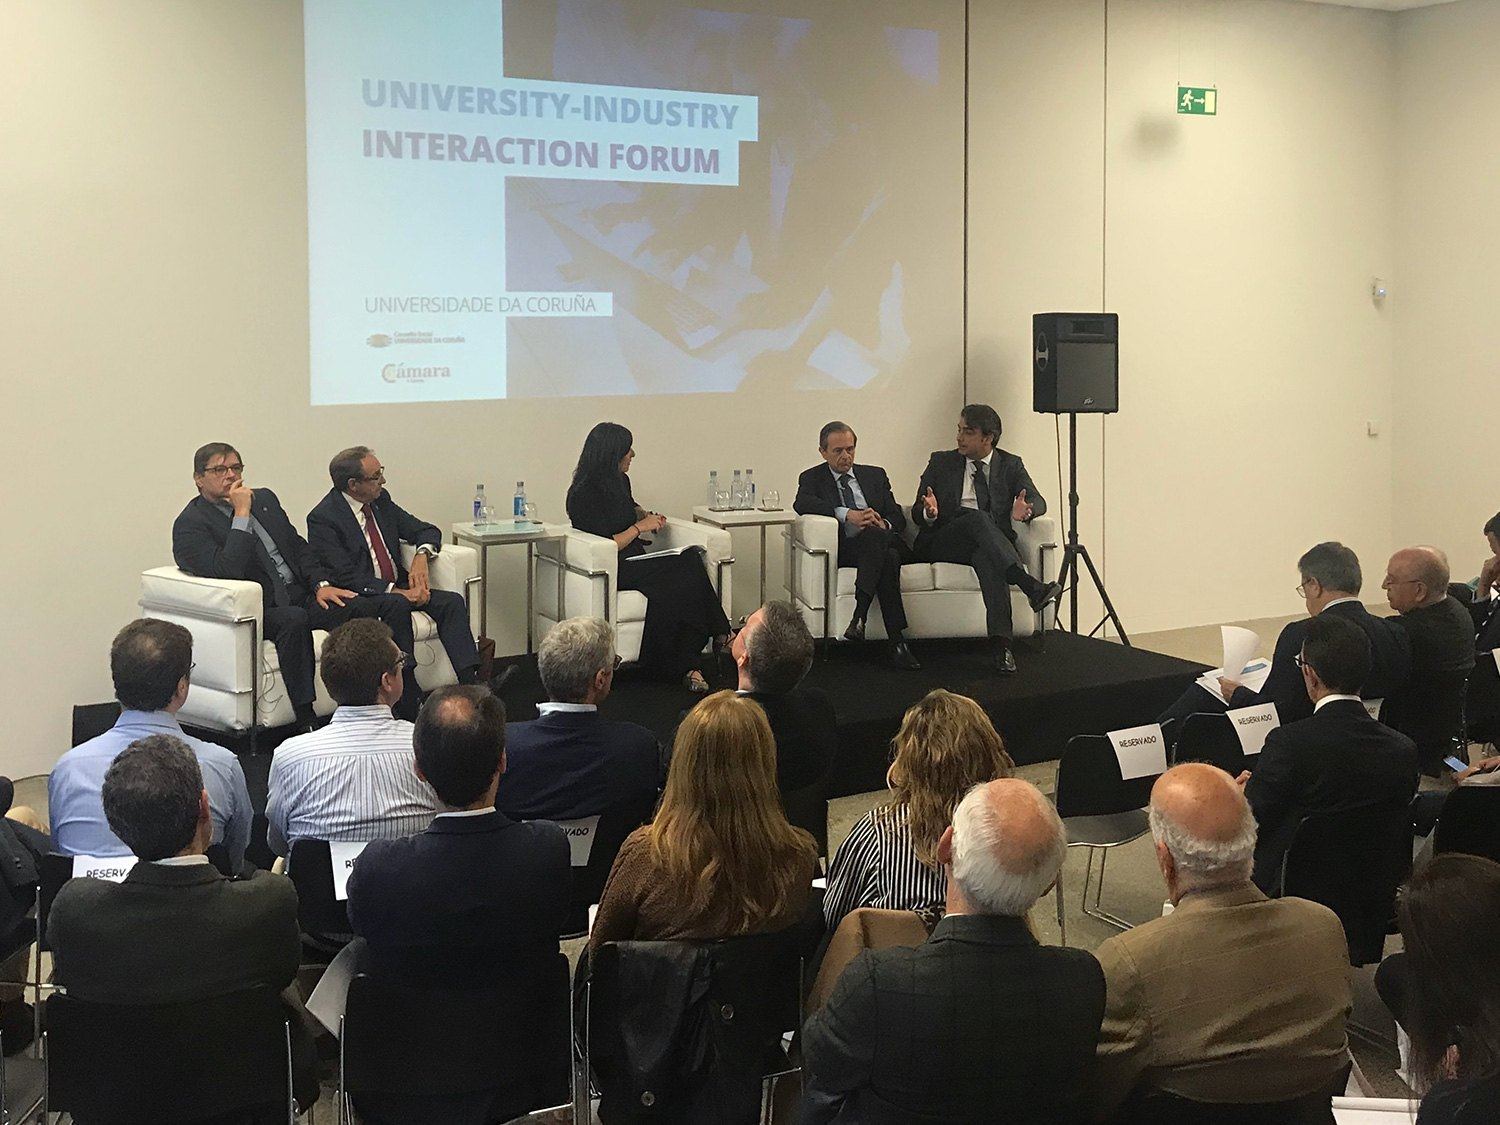 https://consellosocial.udc.es/wp-content/uploads/2019/09/consello-social-University-Industry-Interaction-Forum-2.jpg